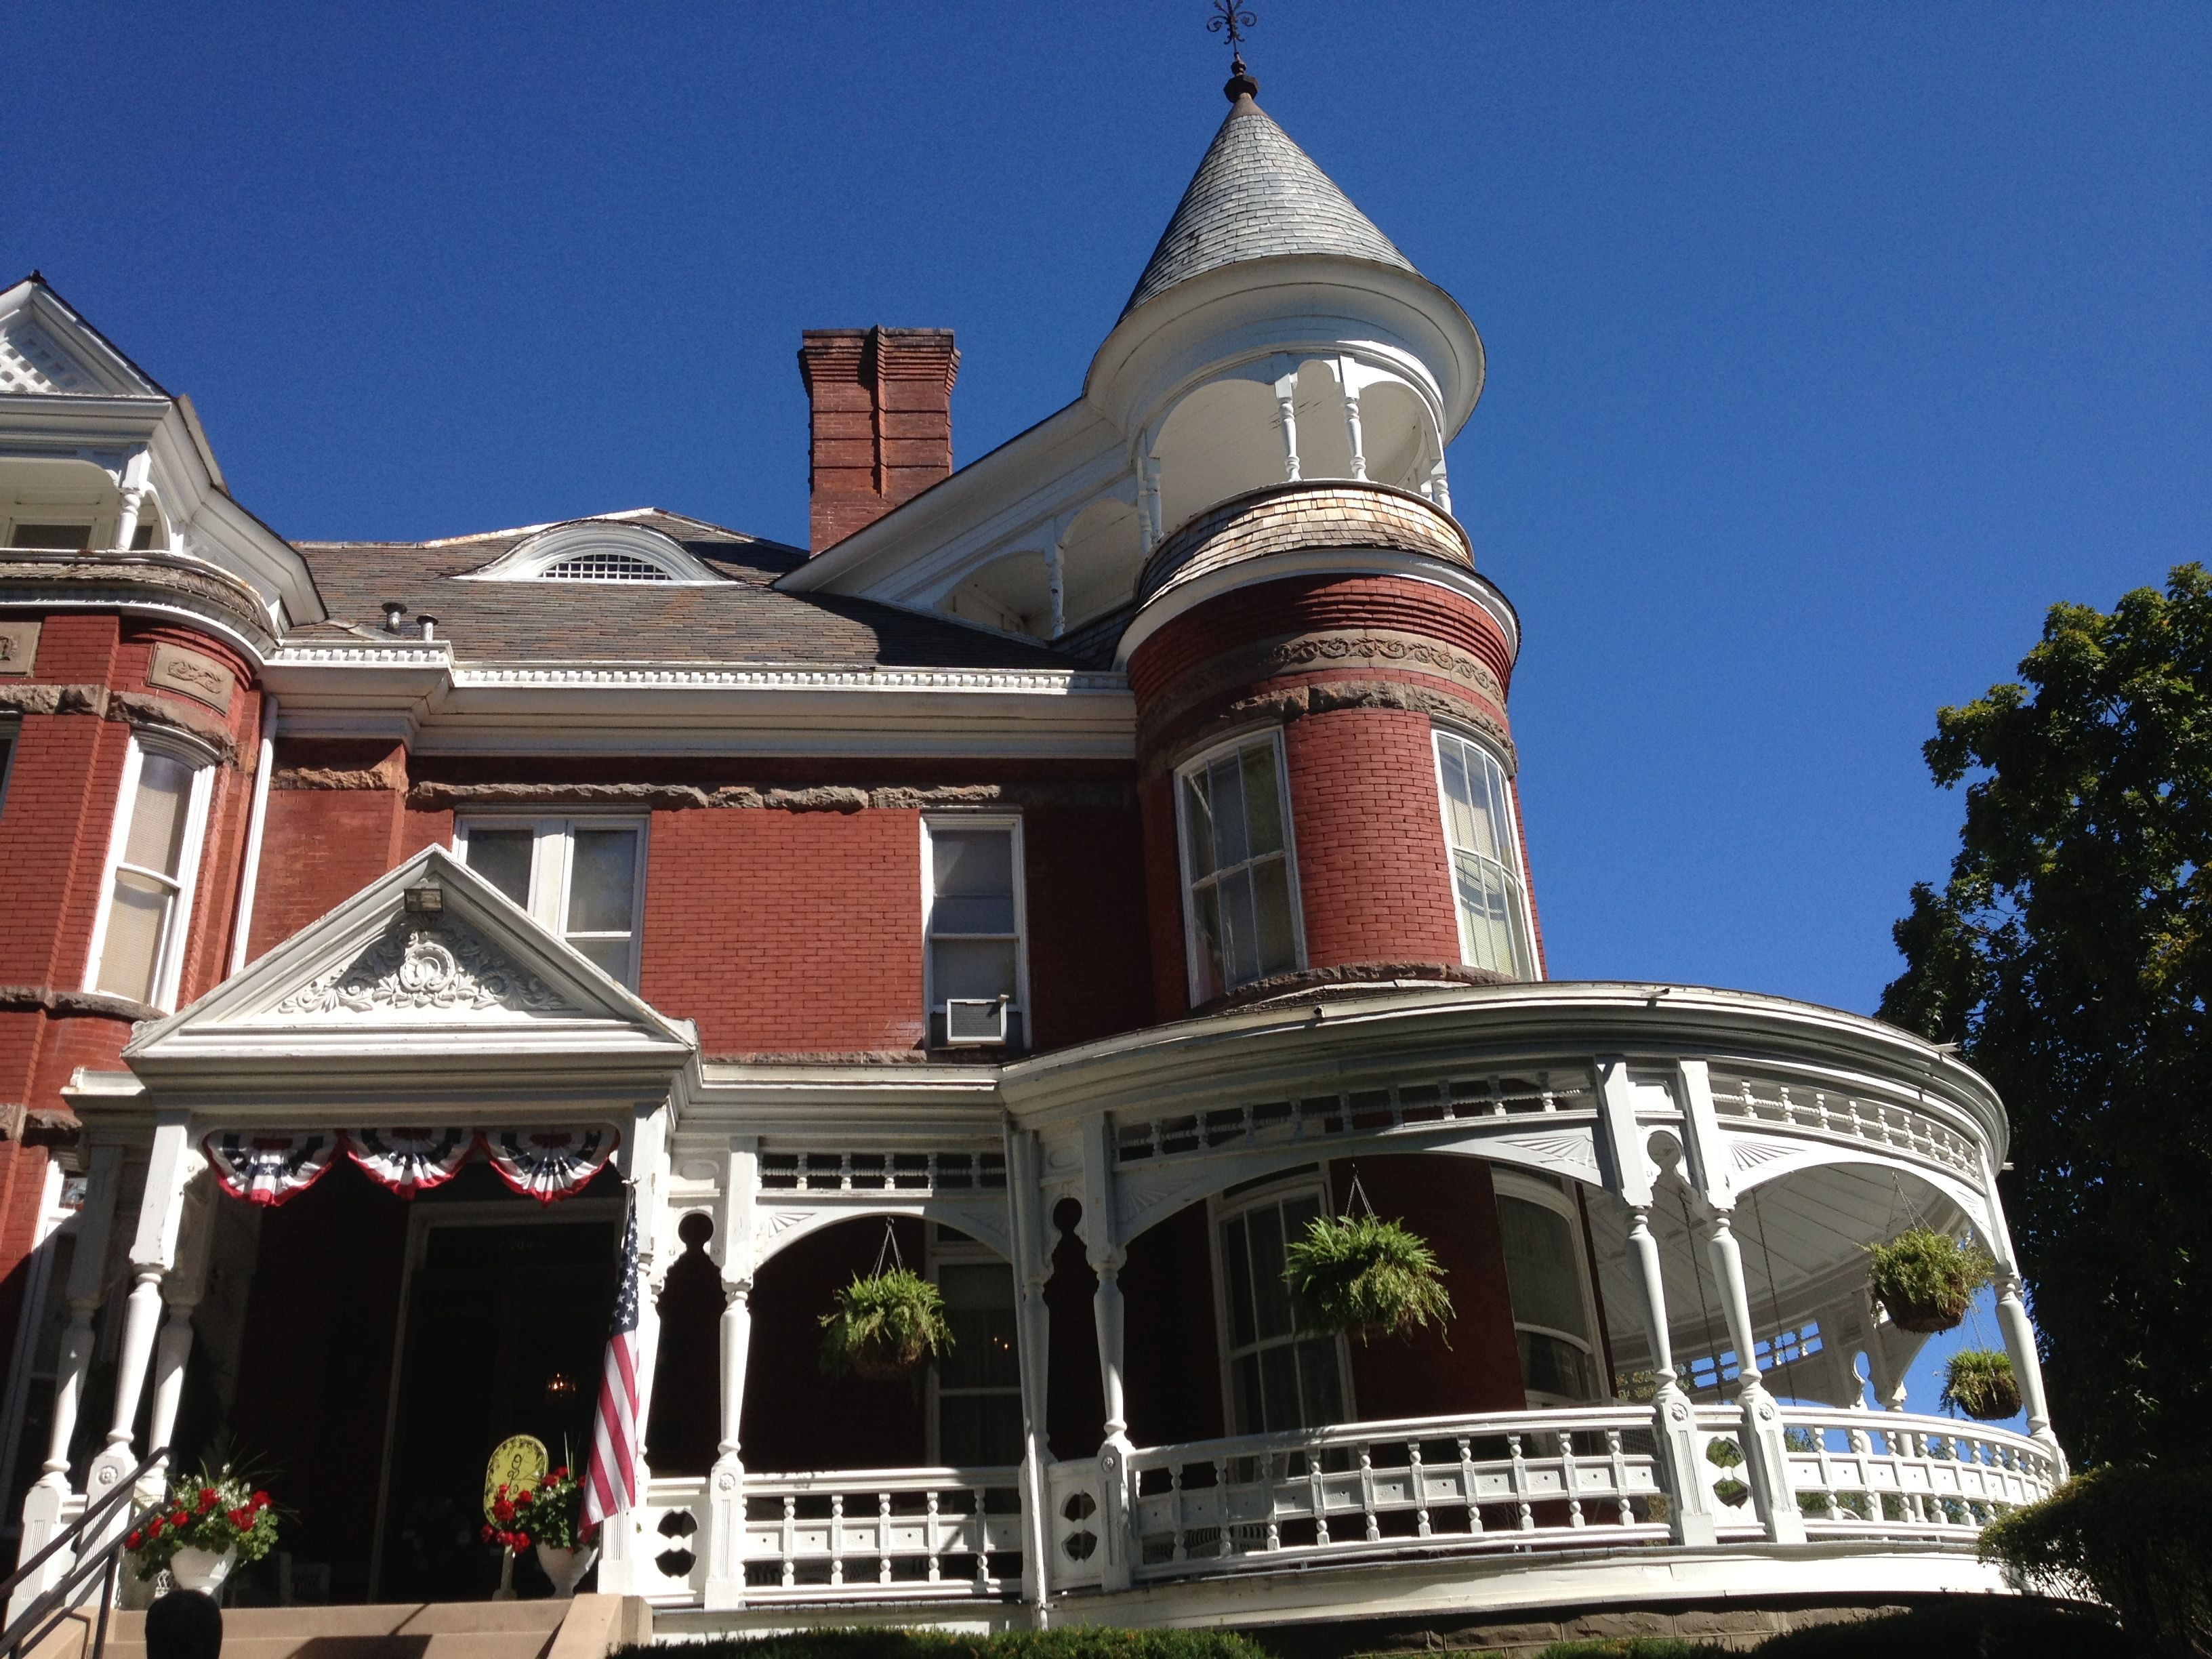 Just one of many beautiful old homes in Atchison. (Photo by J. Schafer)